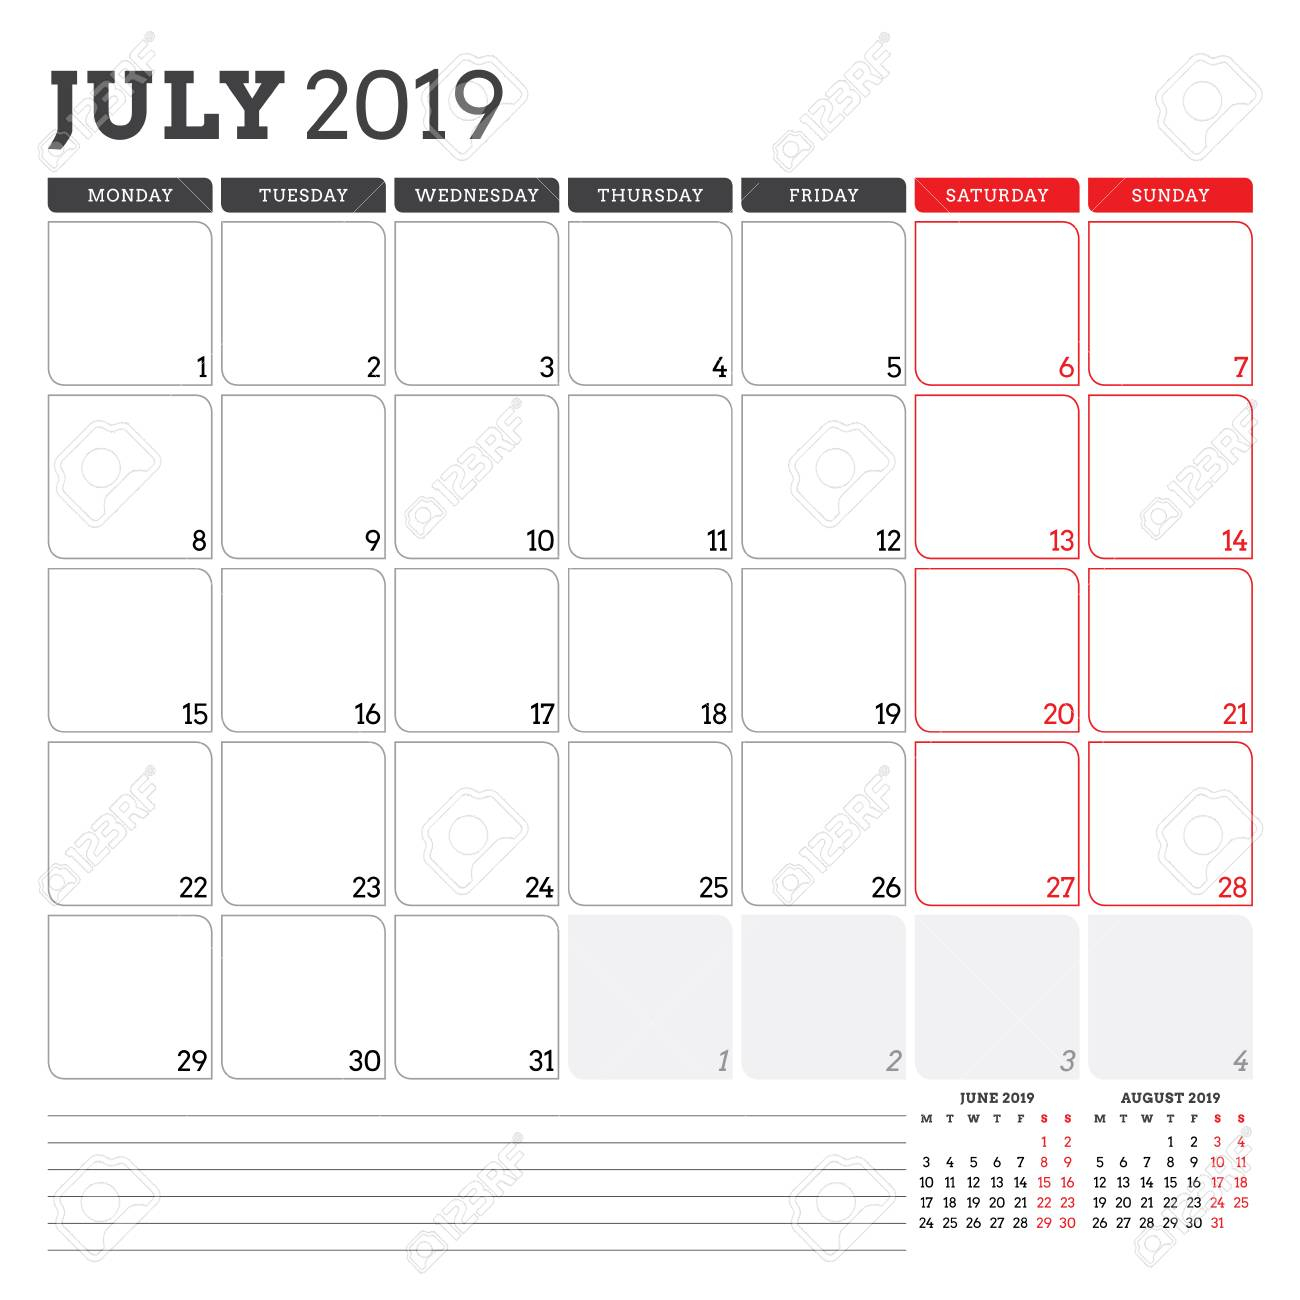 Calendar Planner For July 2019. Week Starts On Monday. Printable..